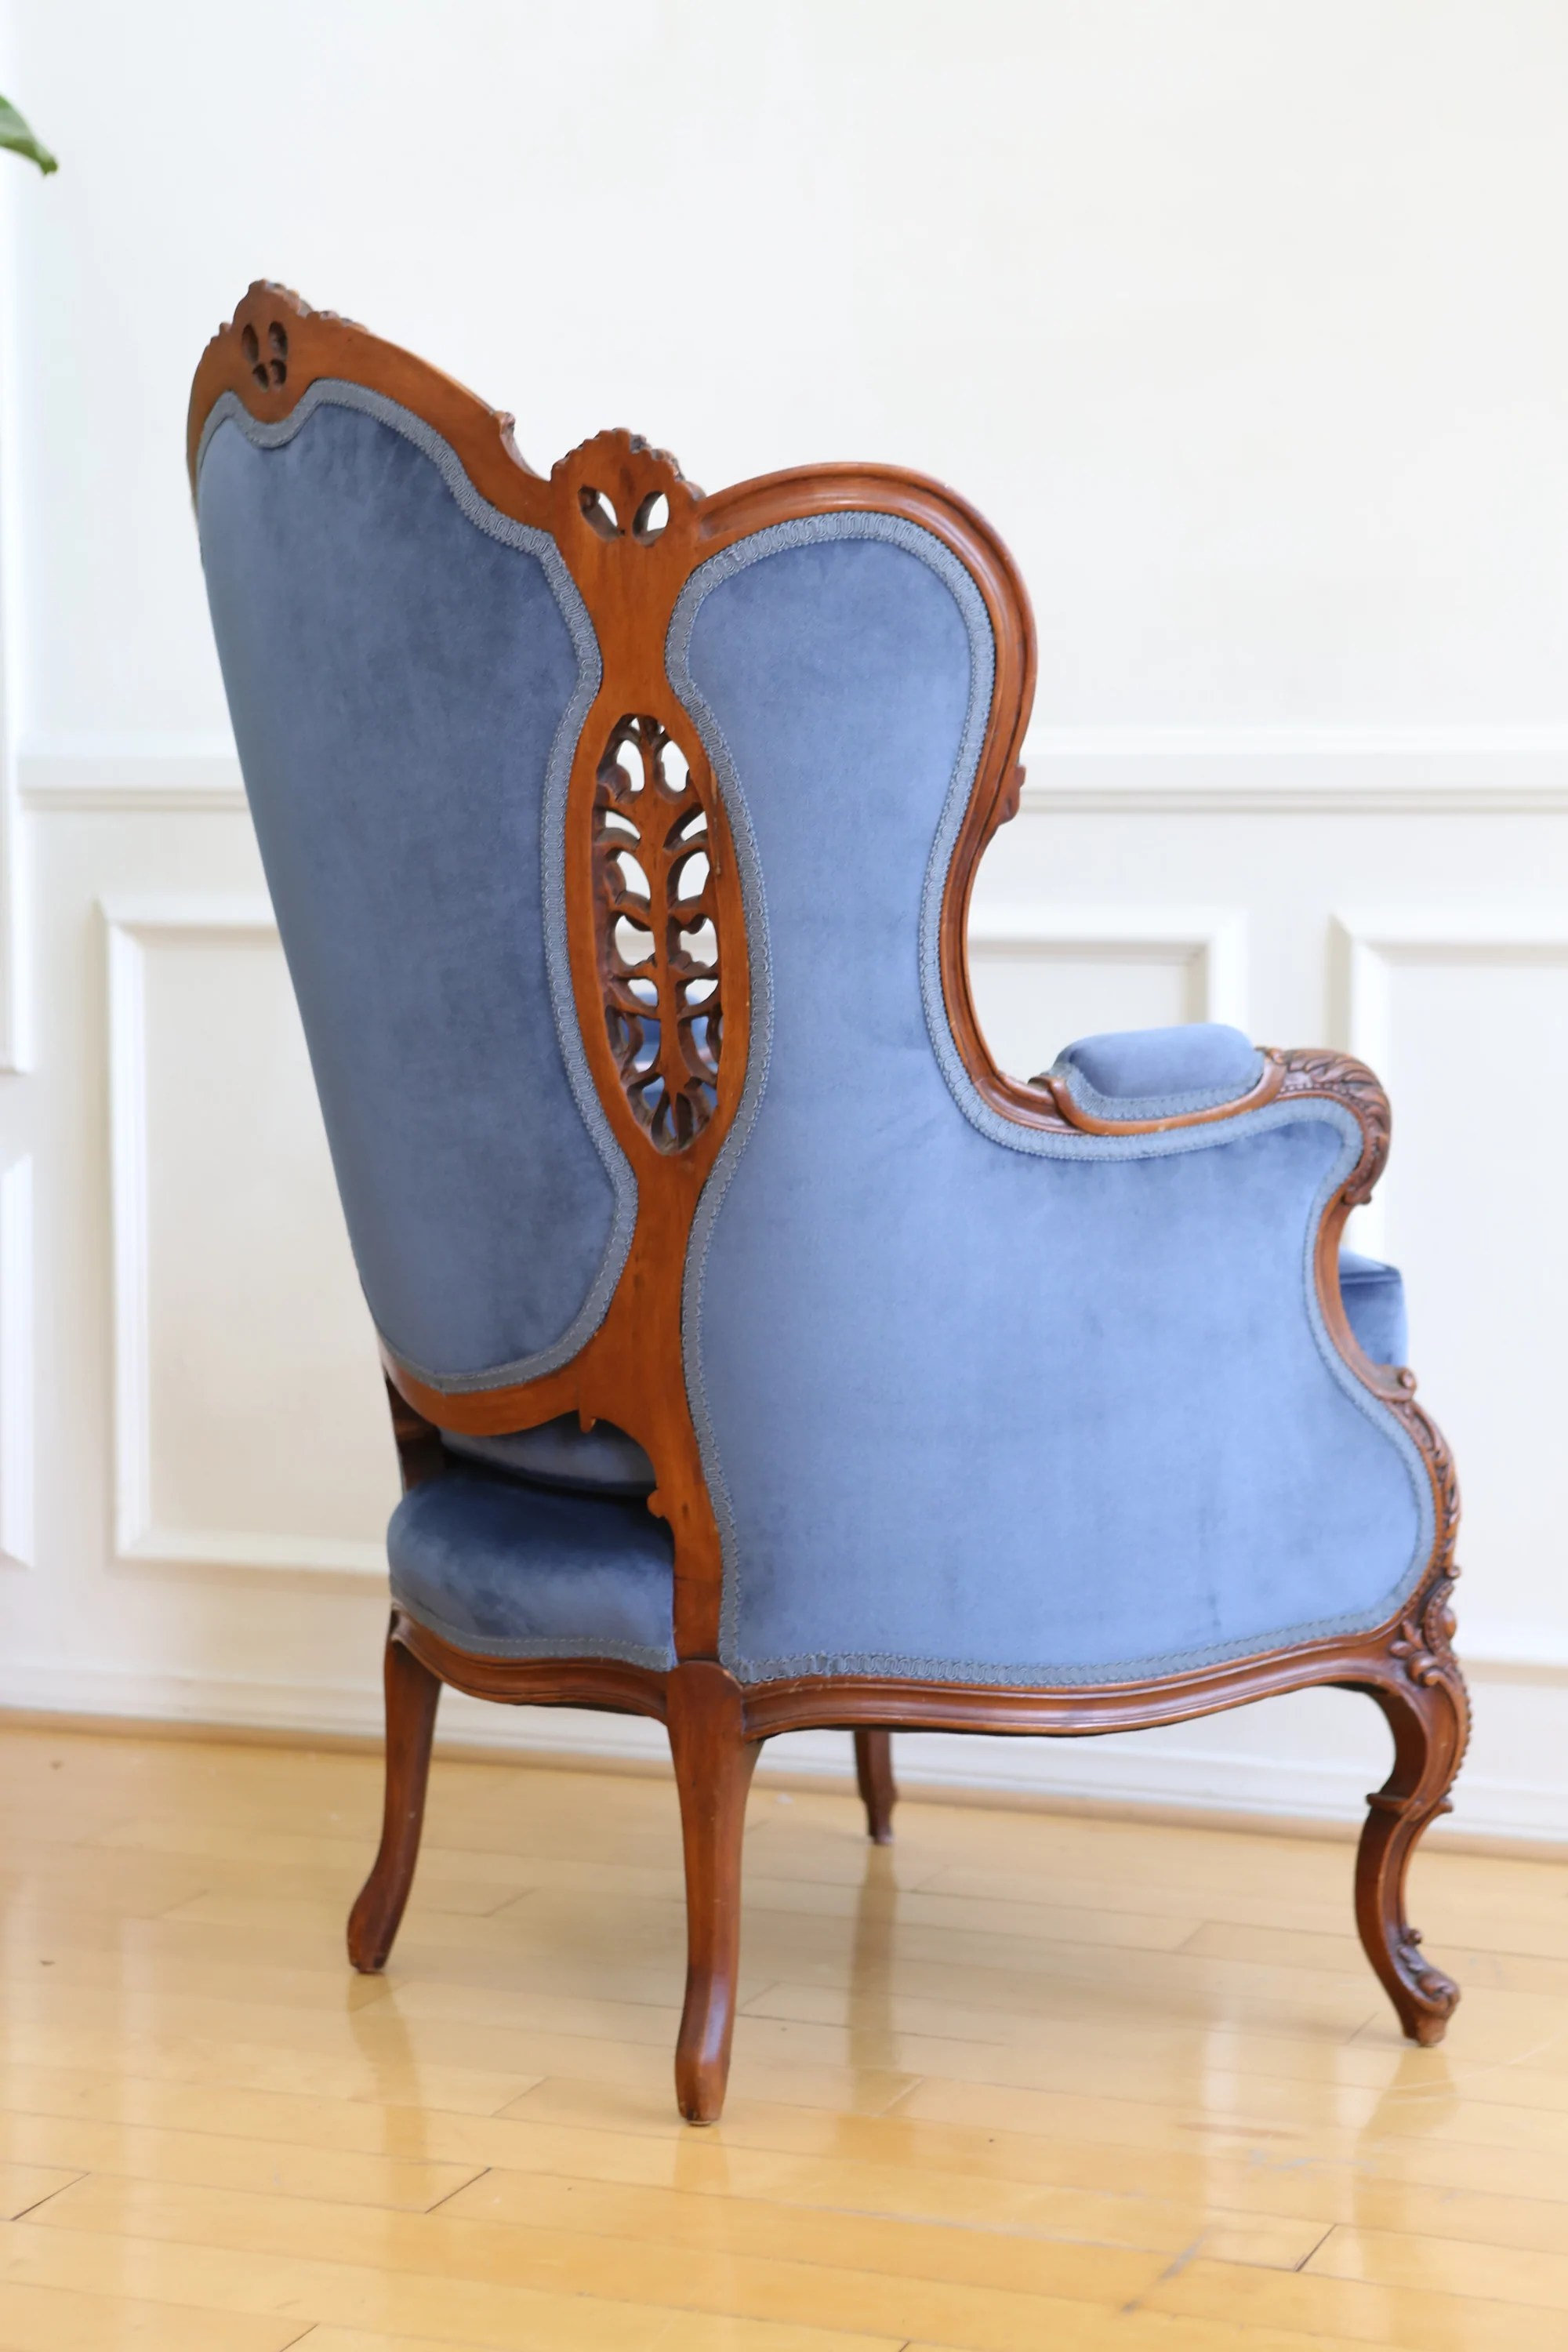 Blue Velvet Wingback Chair Inspirational Blue Velvet Wingback Chair Rtty1